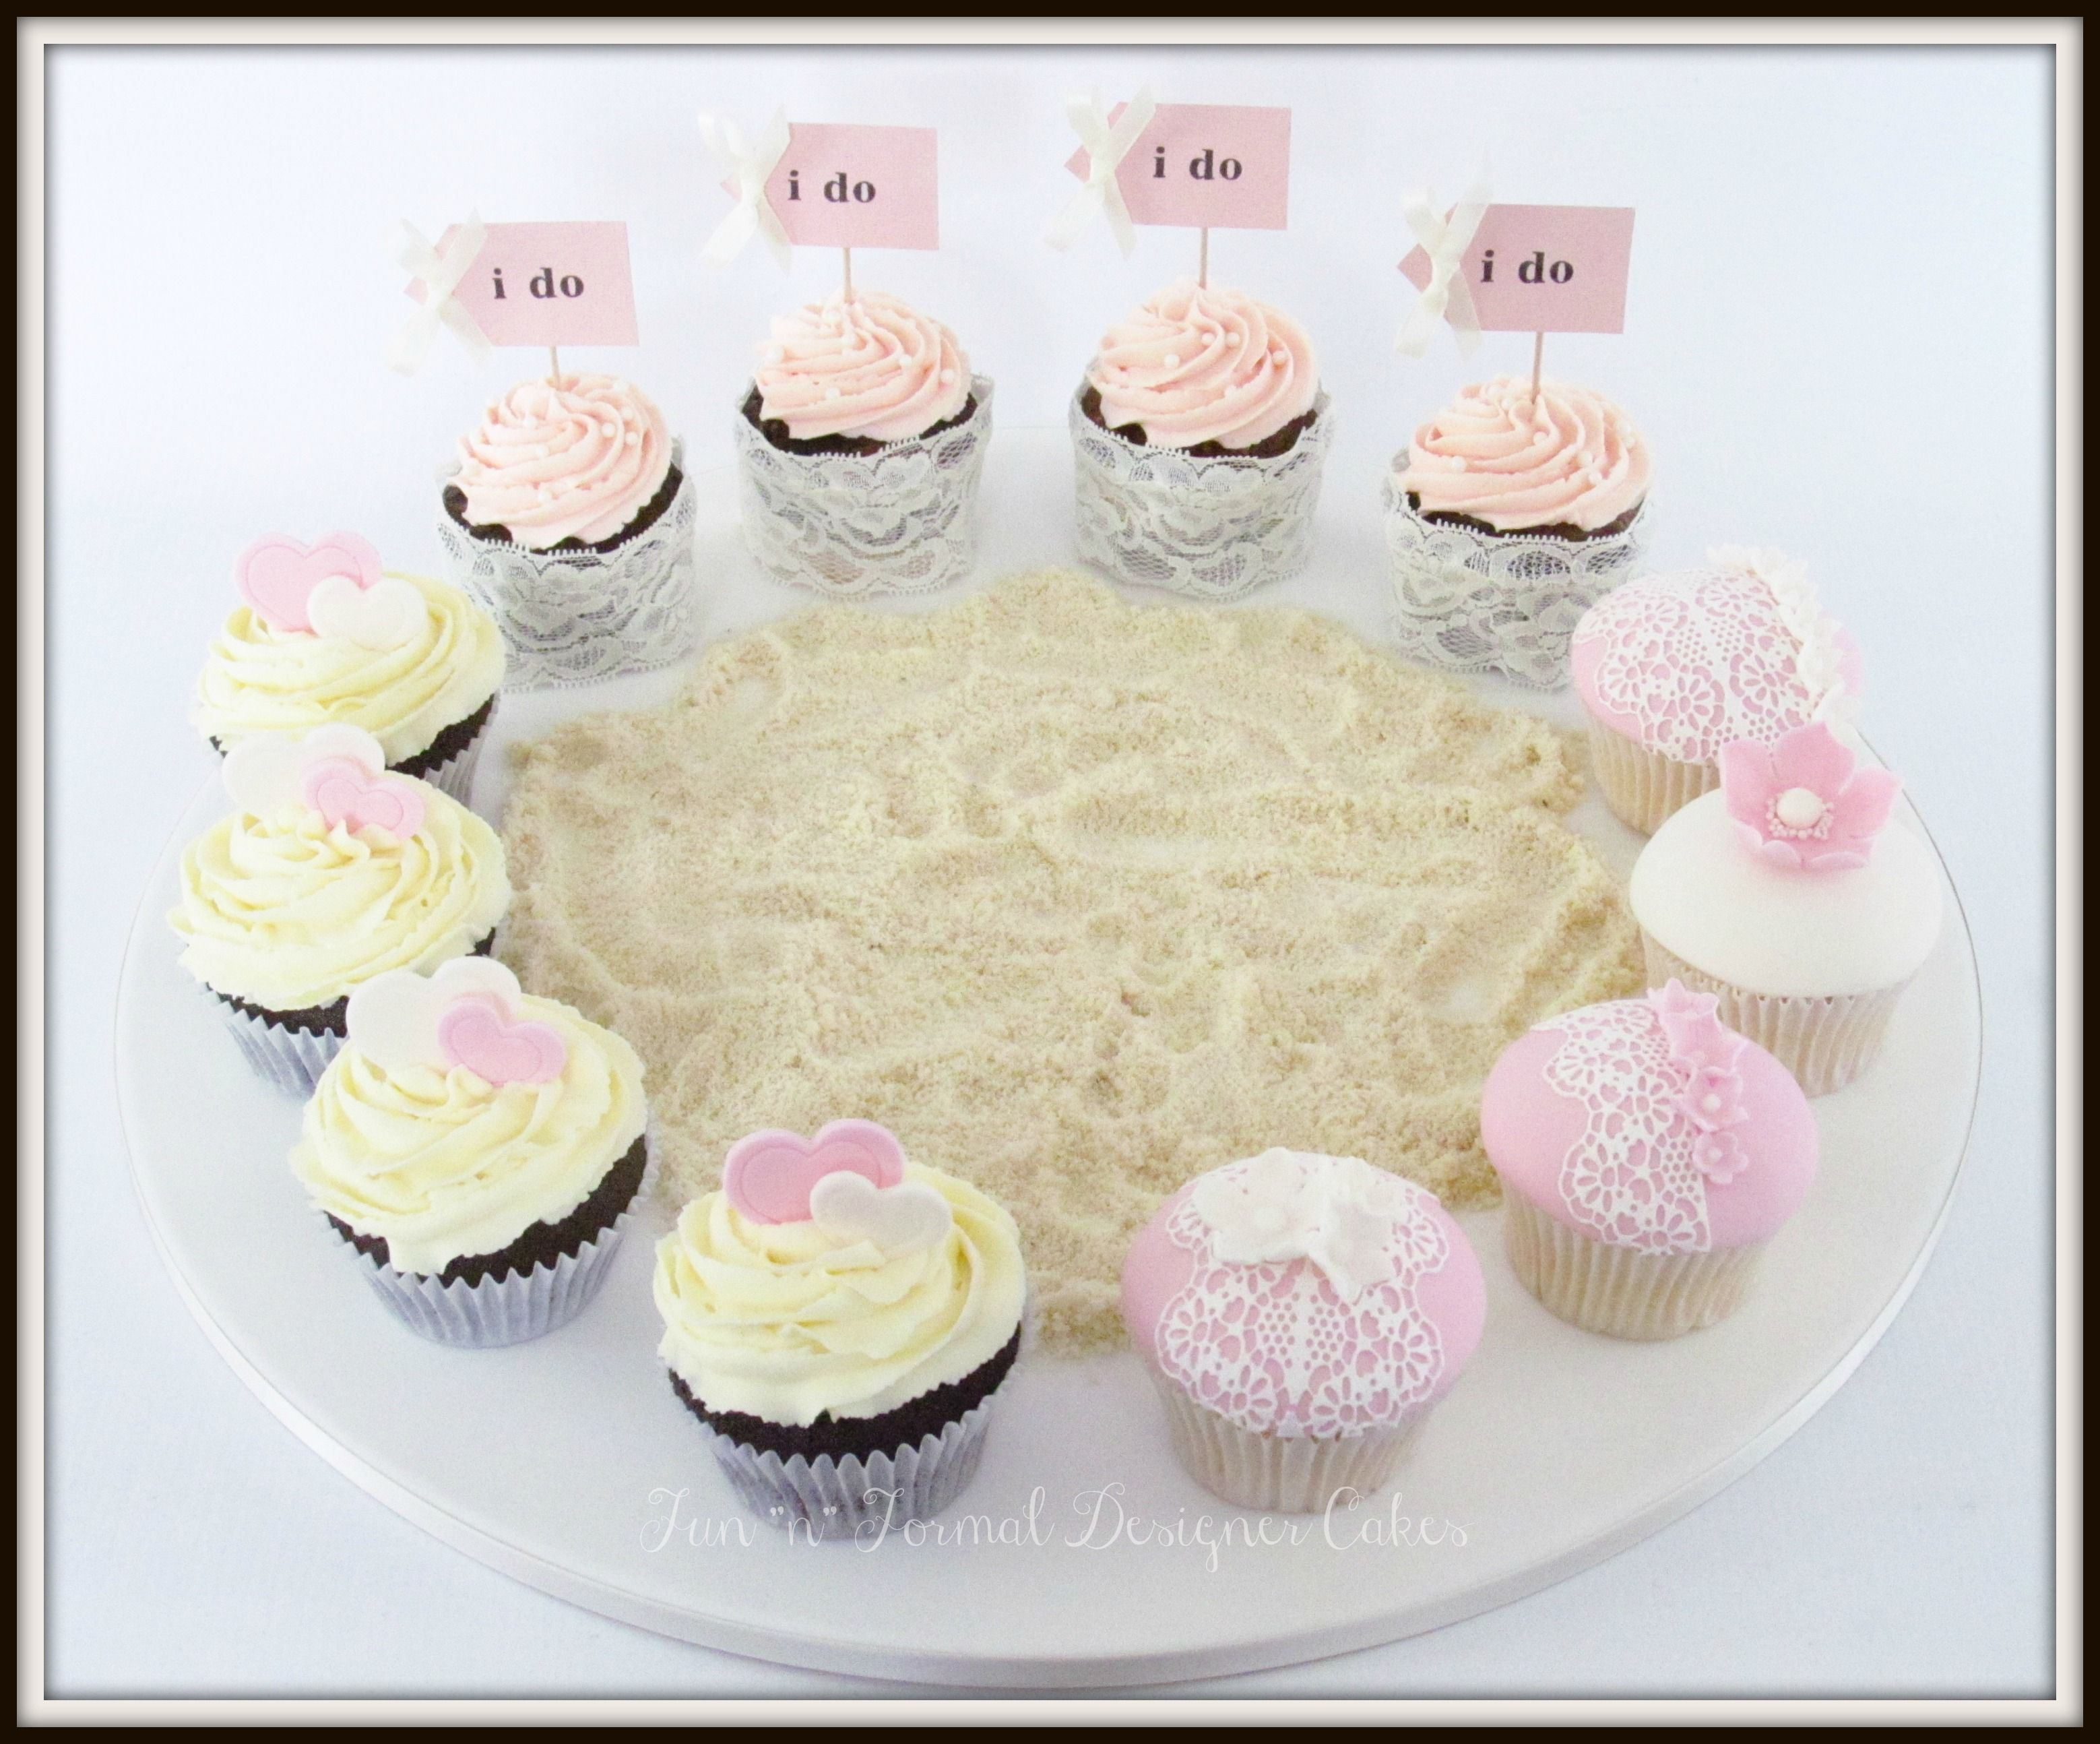 Pink beach themed wedding cupcakes. | Wedding and Engagement Cakes ...